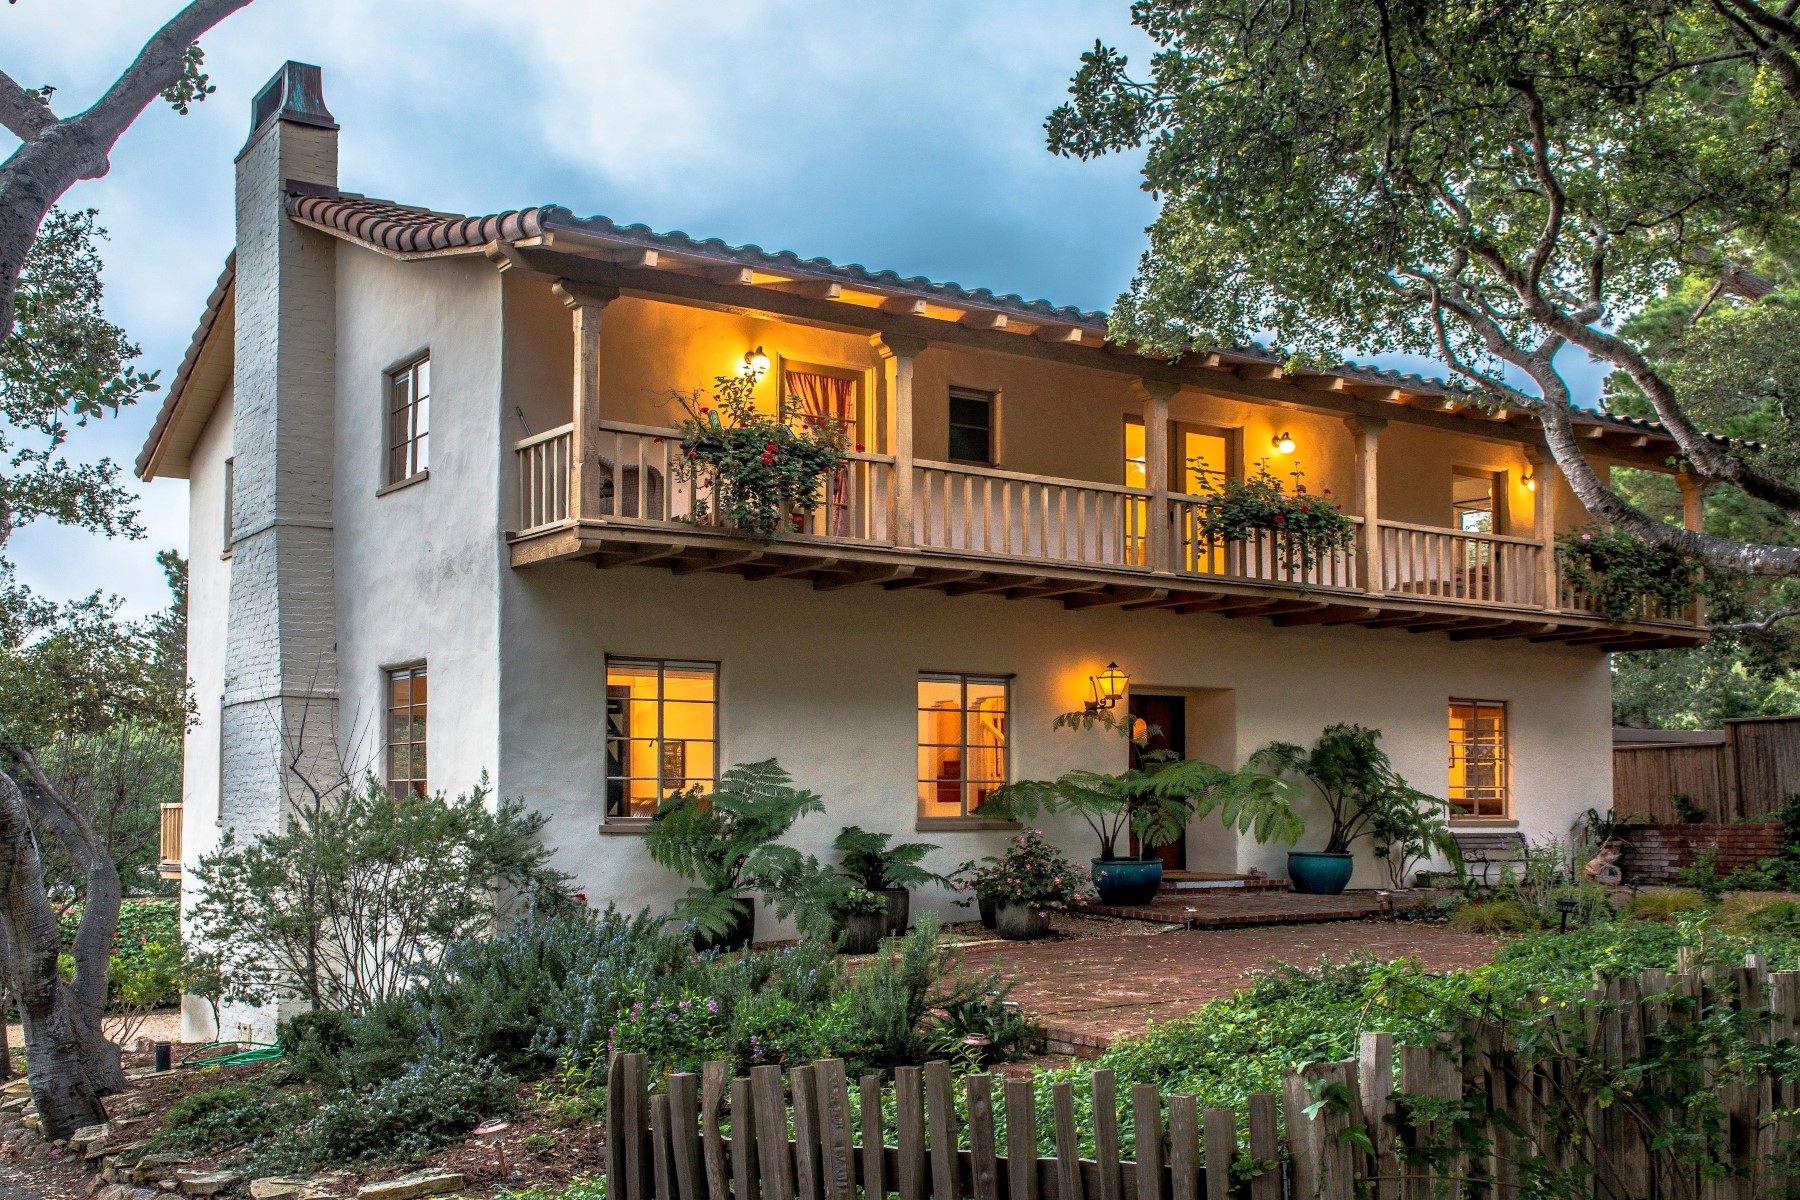 Single Family Home for Sale at Ocean View Colonial Home Lincoln 4 Nw Of Santa Lucia Carmel, California 93923 United States